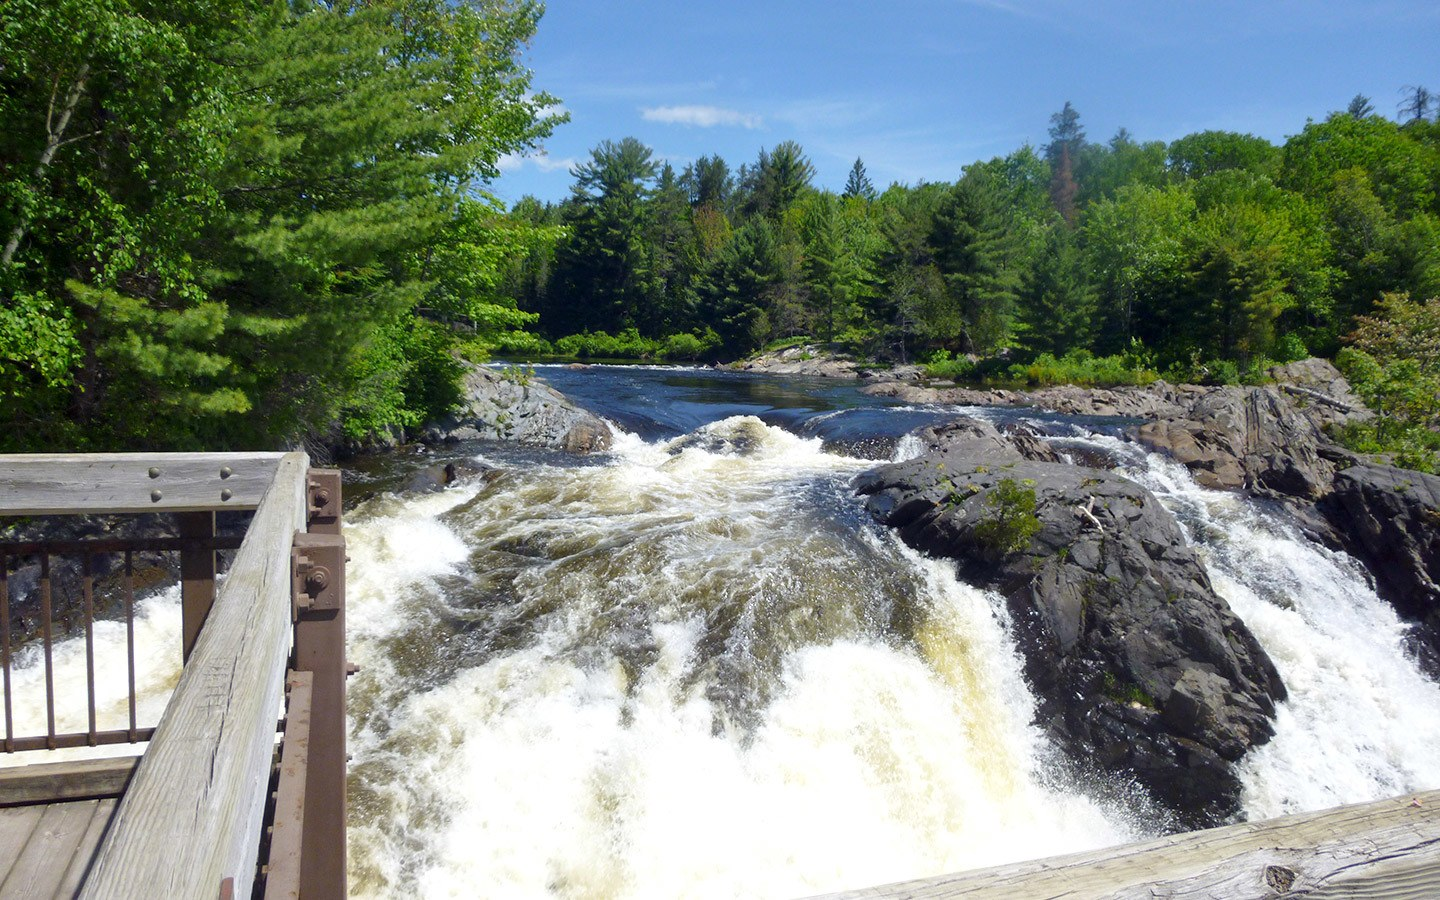 Waterfall at Chutes Provincial Park, Ontario